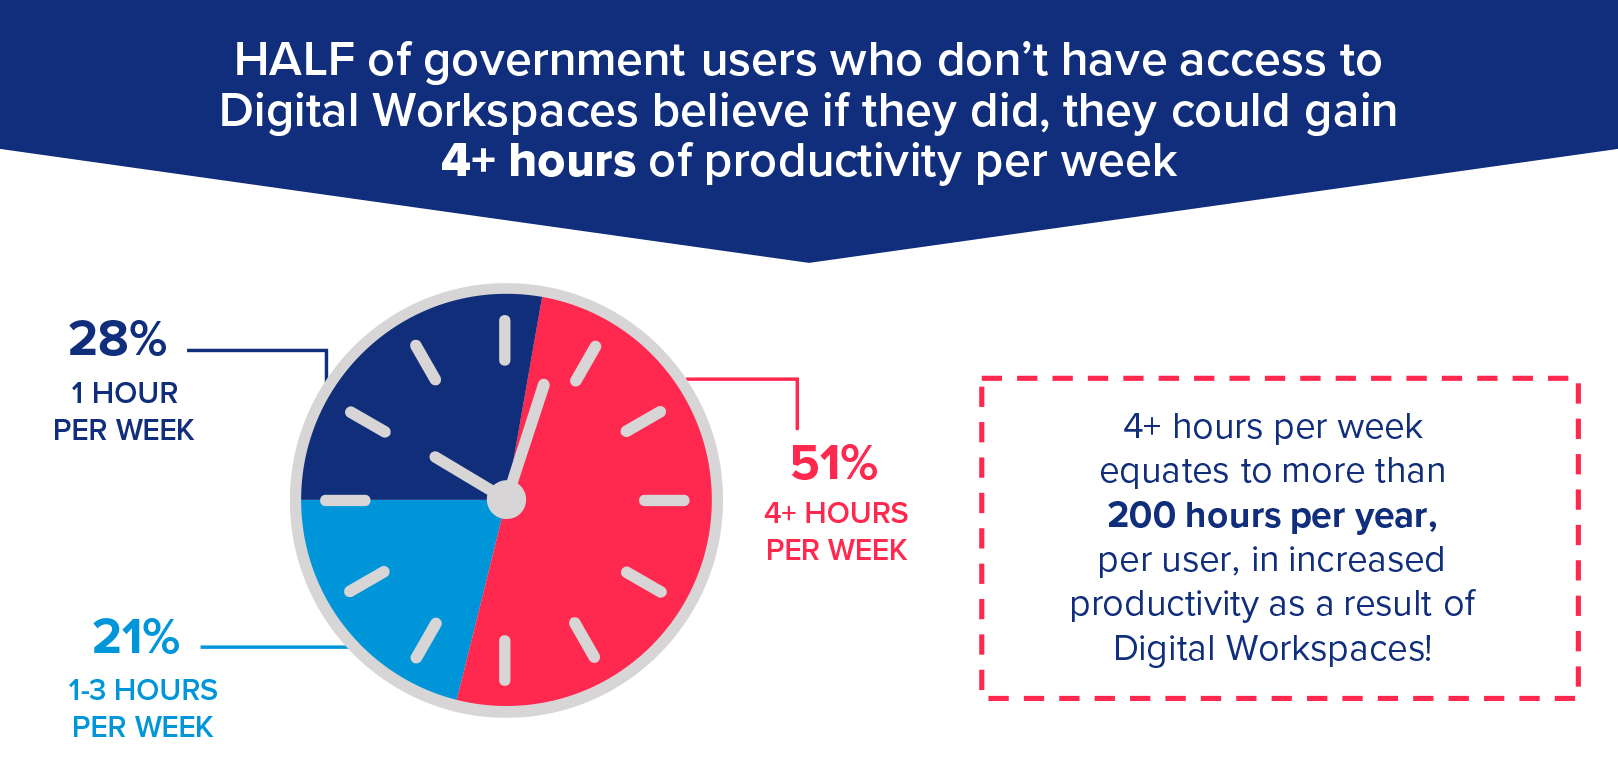 HALF of government users who don't have access to Digital Workspaces believe if they did, they could gain 4+ hours of productivity per week